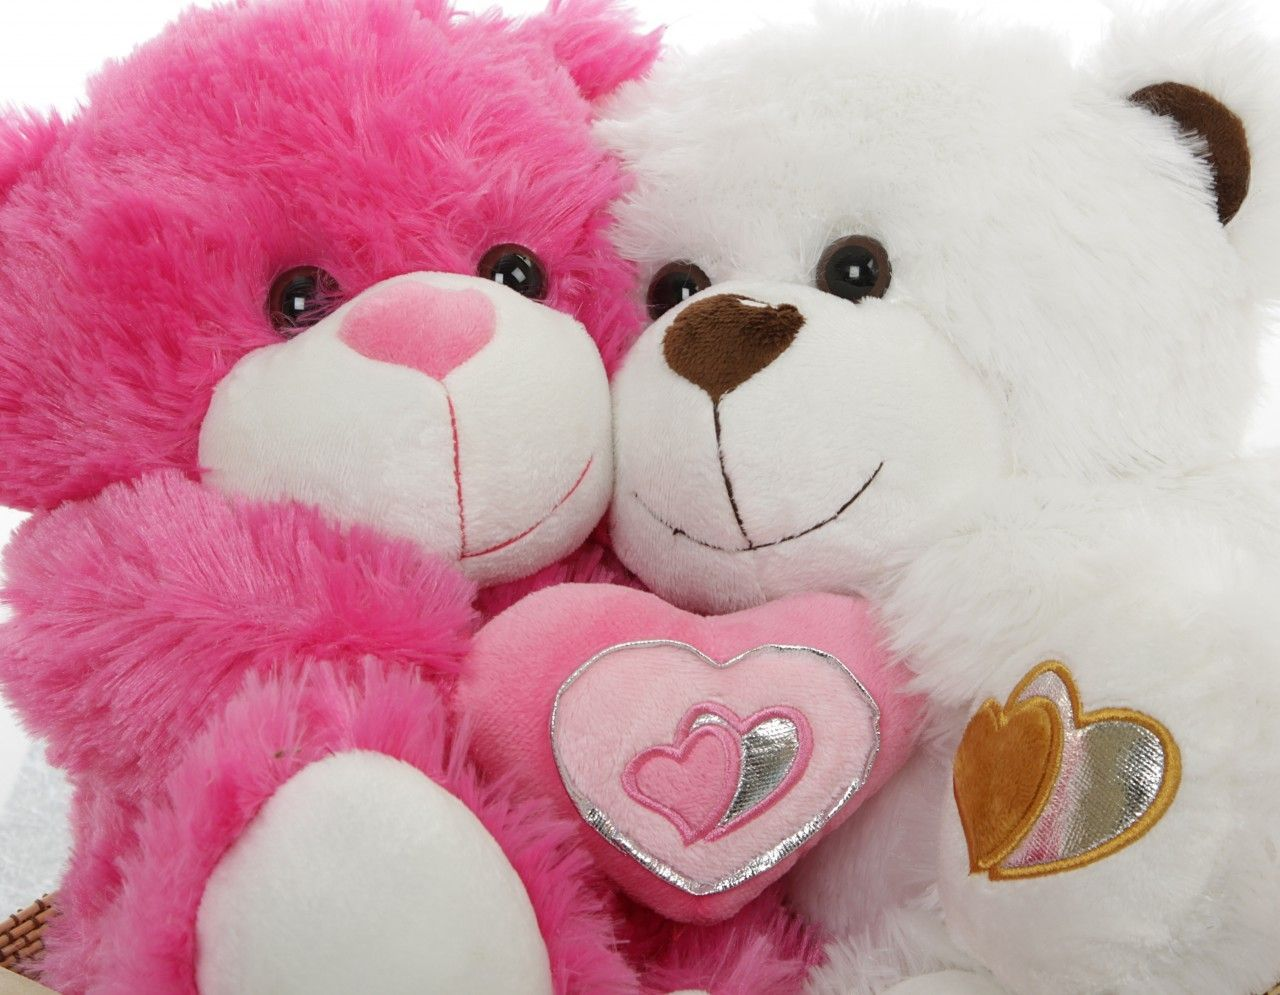 17 best images about teddy bear on pinterest teddy bears picnic